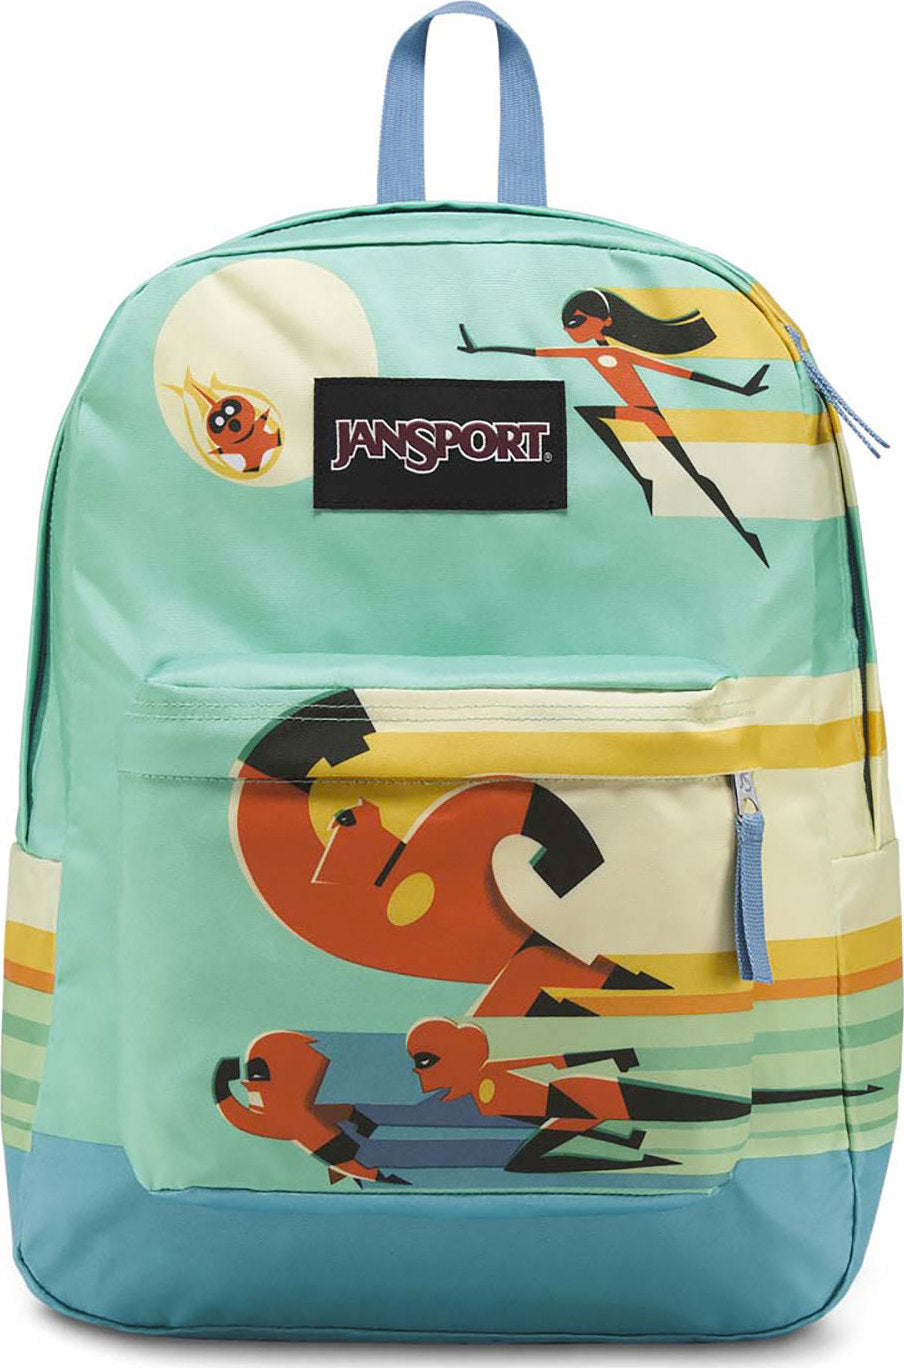 7d8acf8841f Jansport Incredibles High Stakes Backpack - 25l